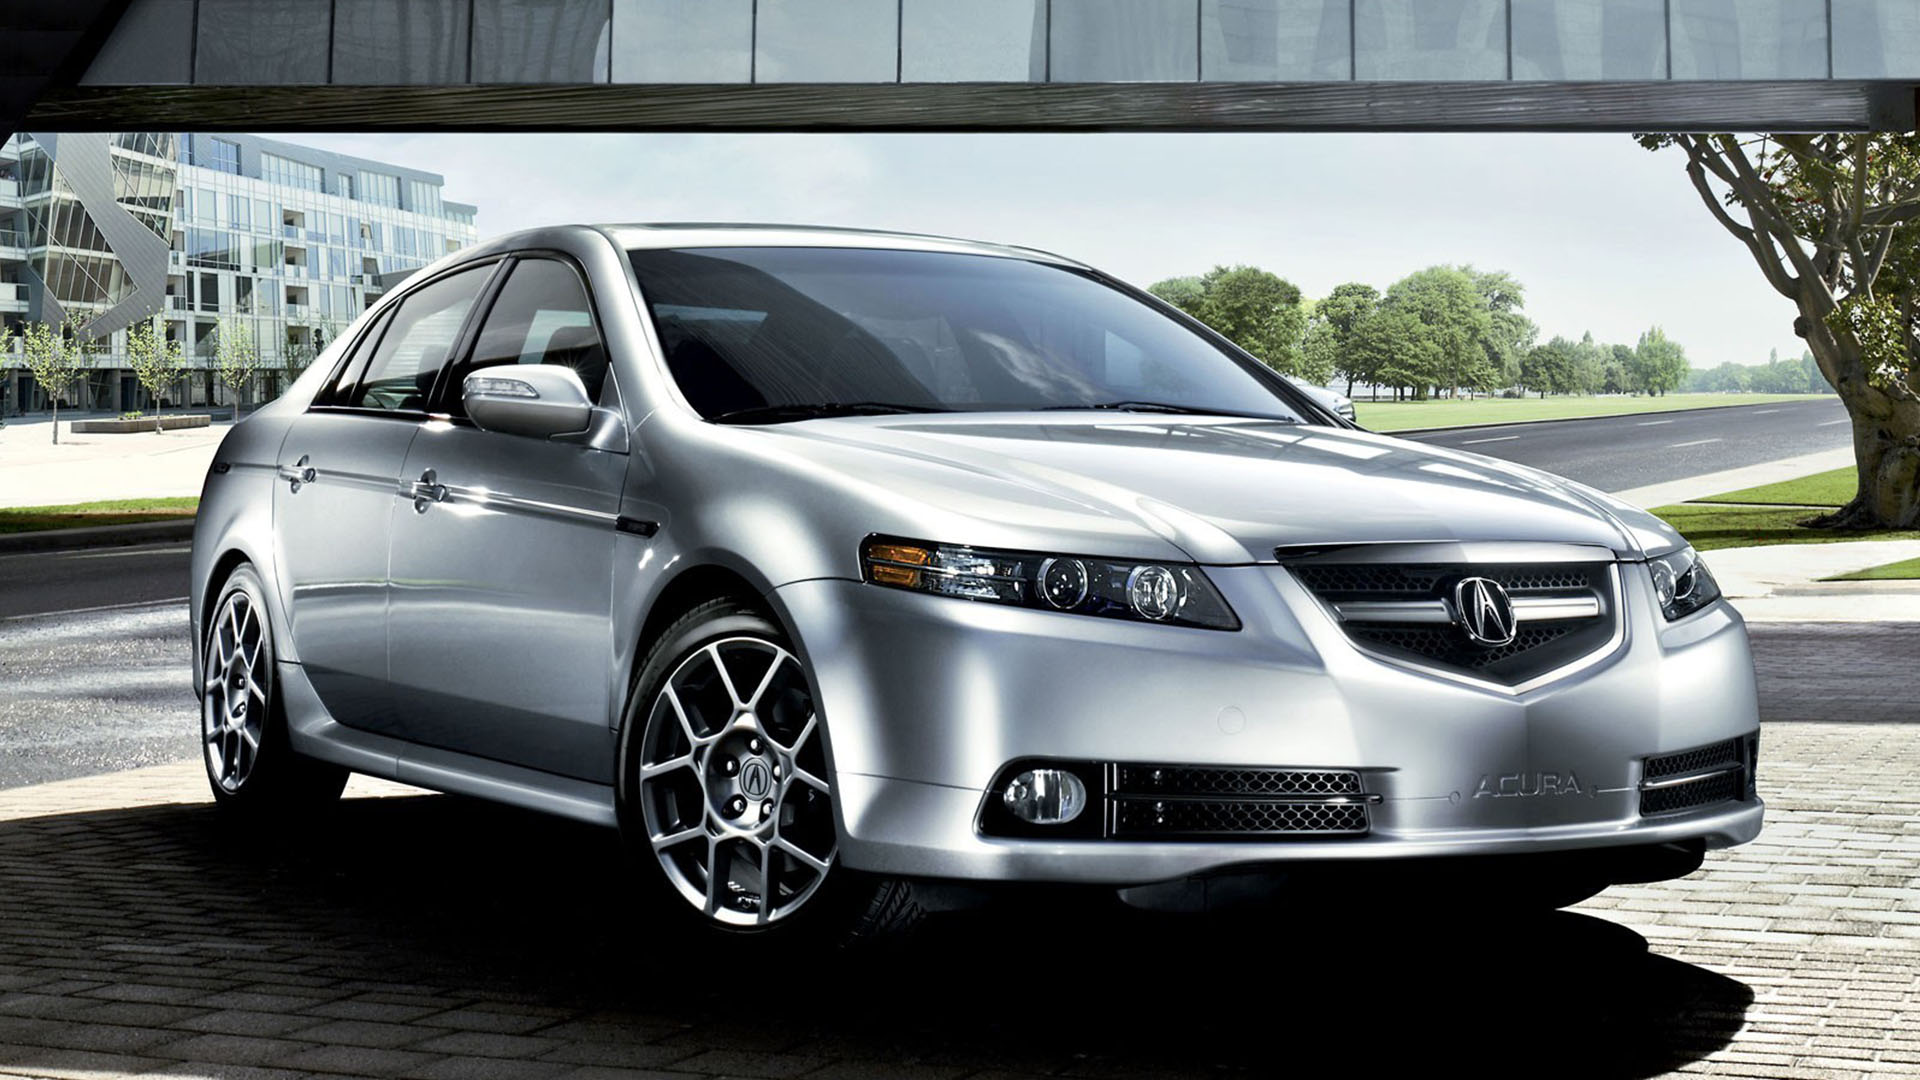 Underrated Ride Of The Week Acura TL Type S The - Are acura tl good cars